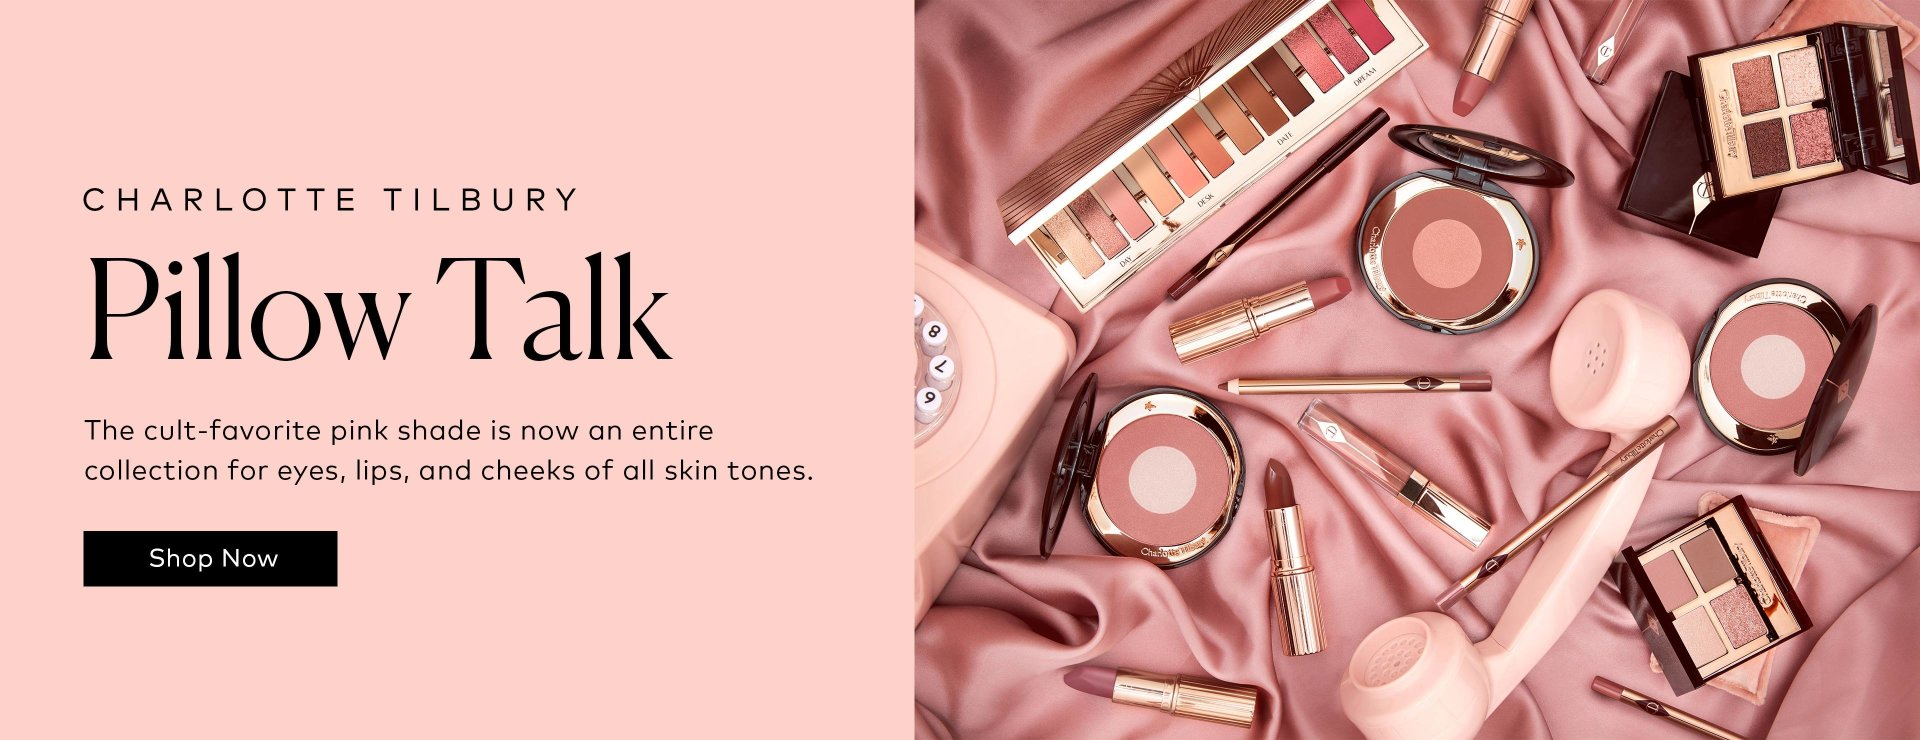 Shop Charlotte Tilbury's Pillow Talk Extravaganza Collection on Beautylish.com